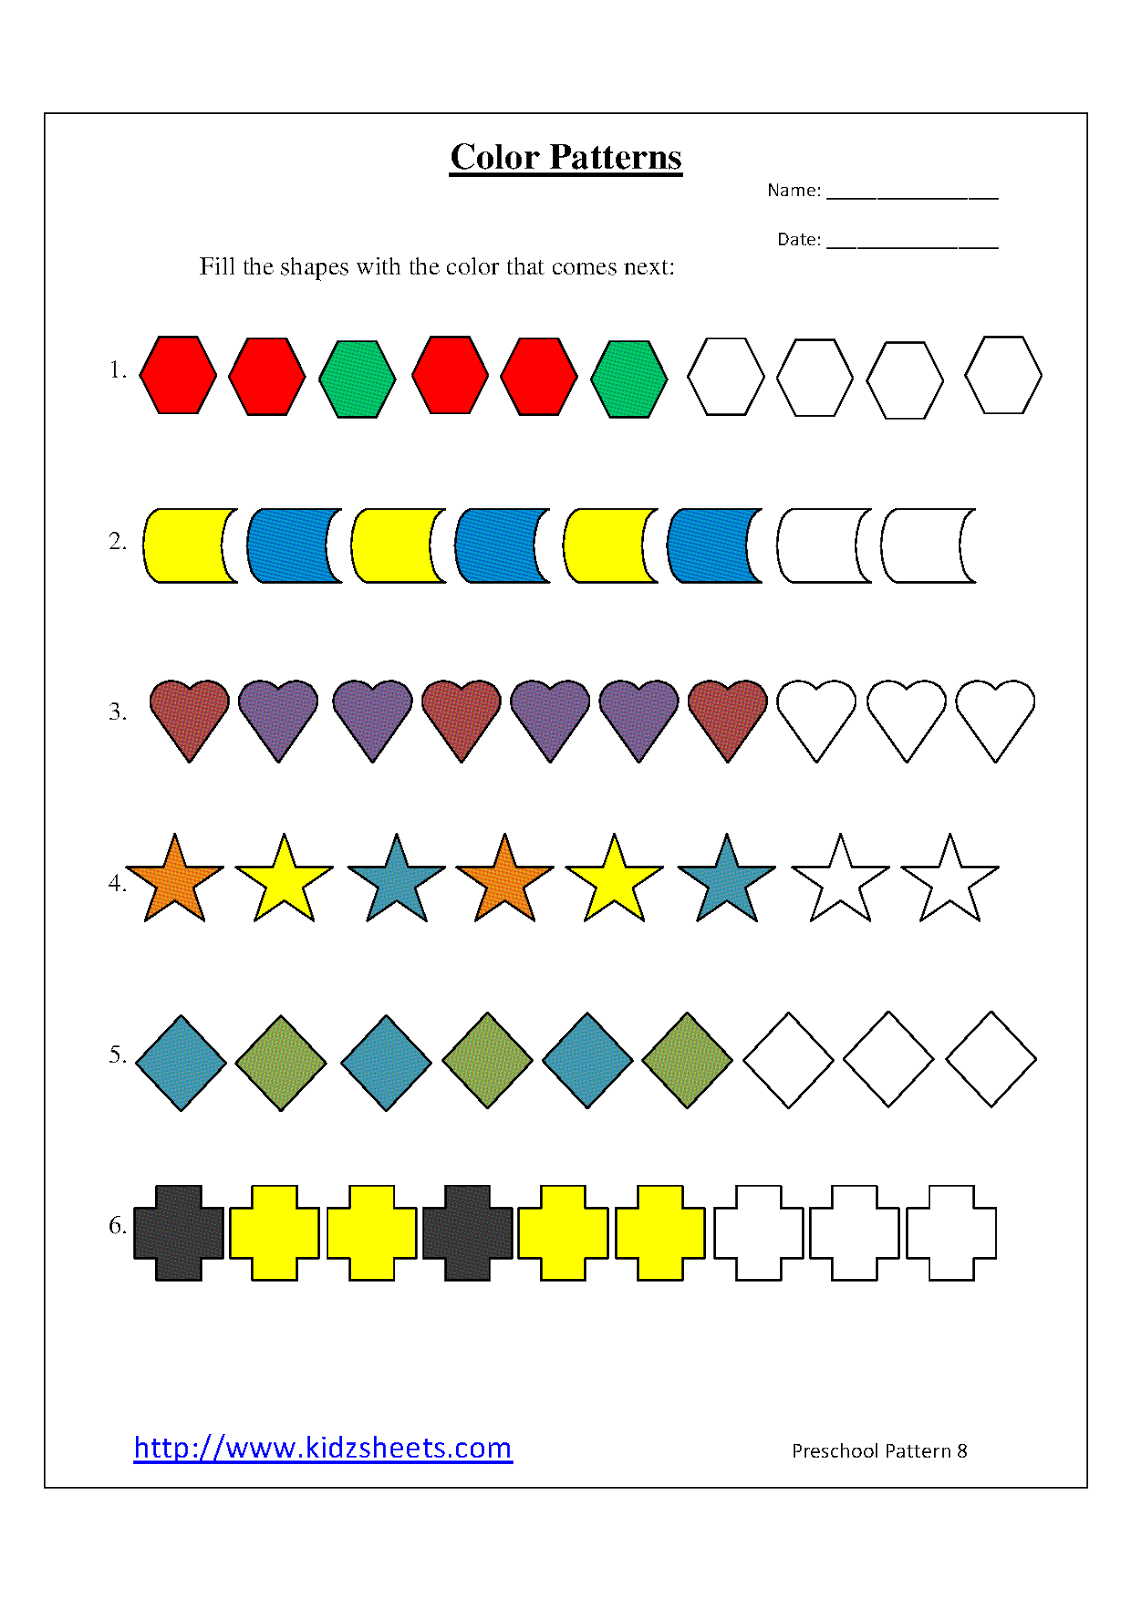 Kidz Worksheets Preschool Color Patterns Worksheet8